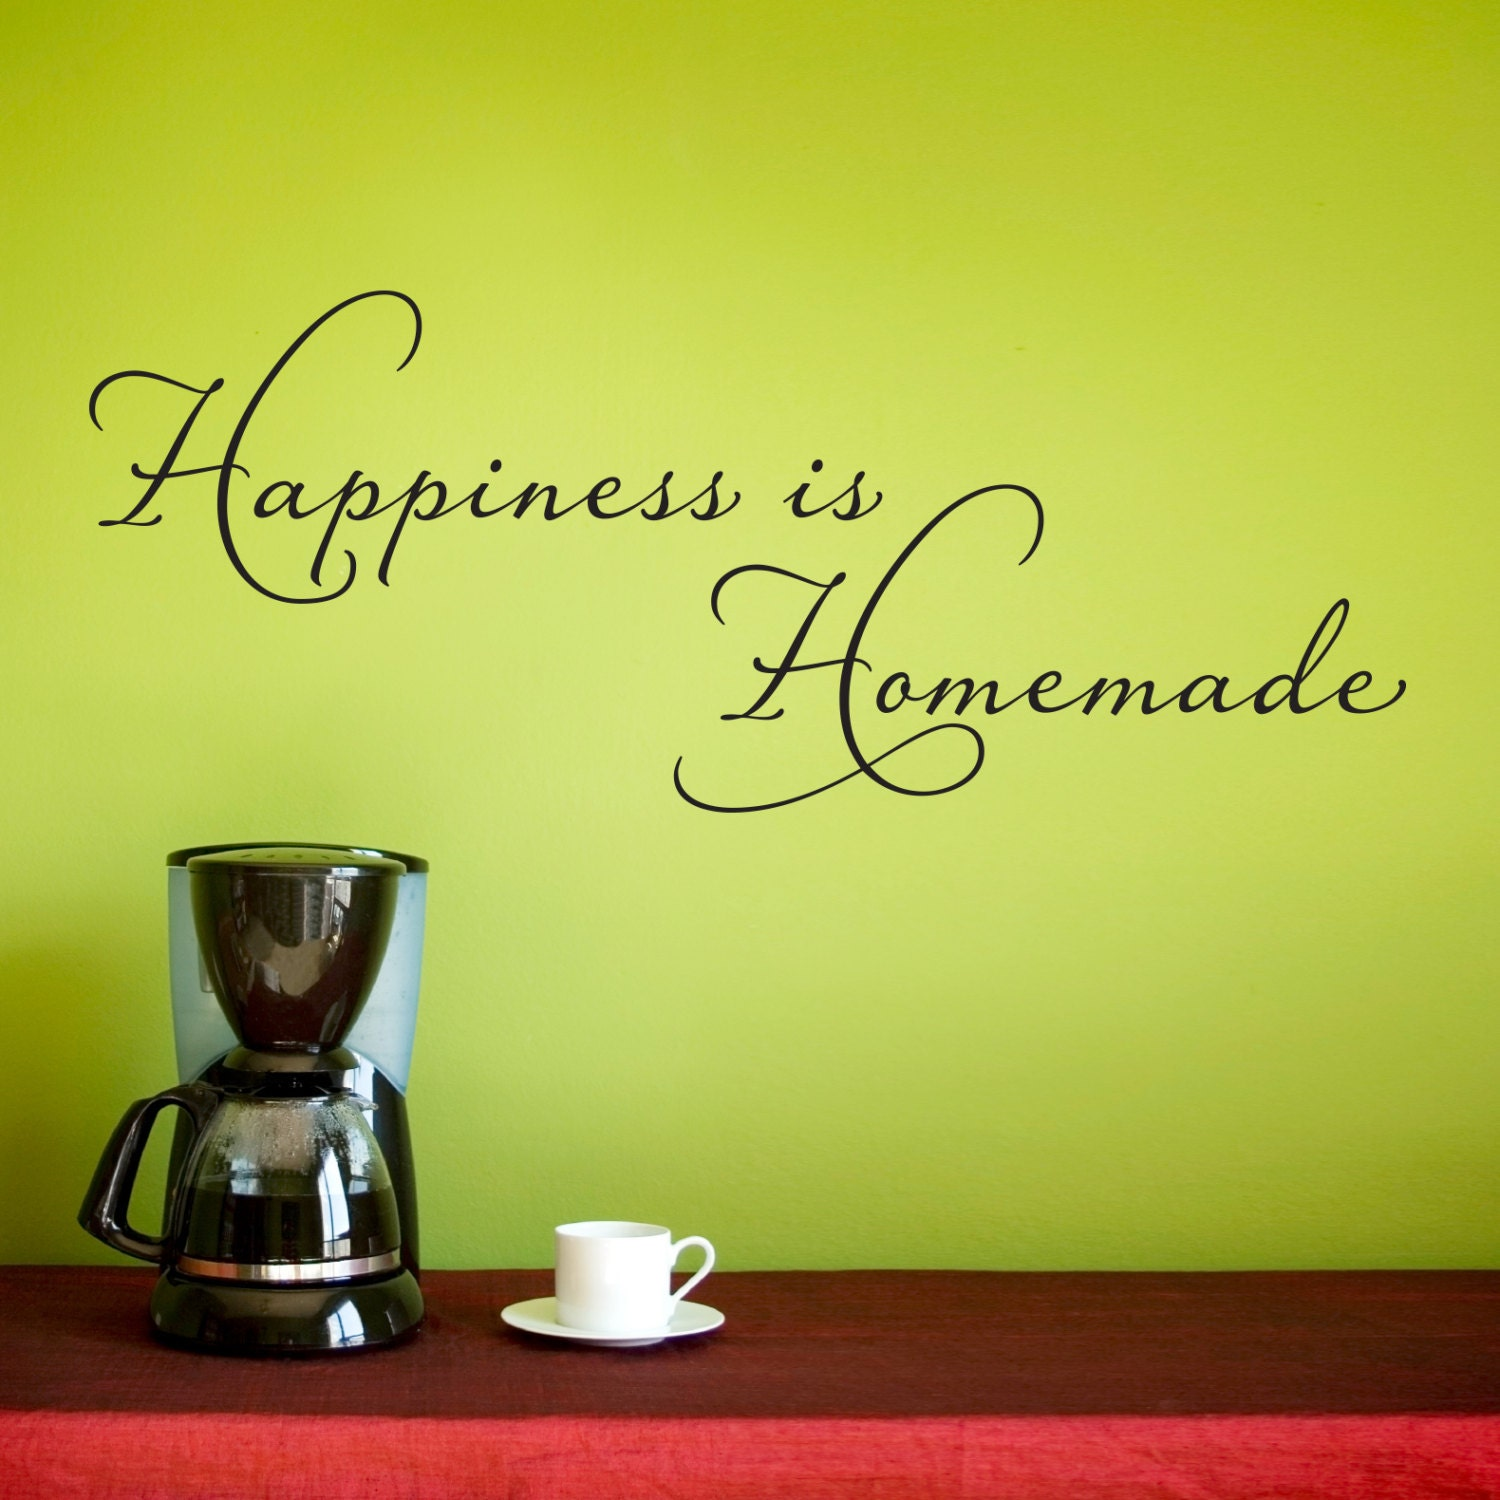 Happiness is Homemade Wall Decal Kitchen Wall Sticker